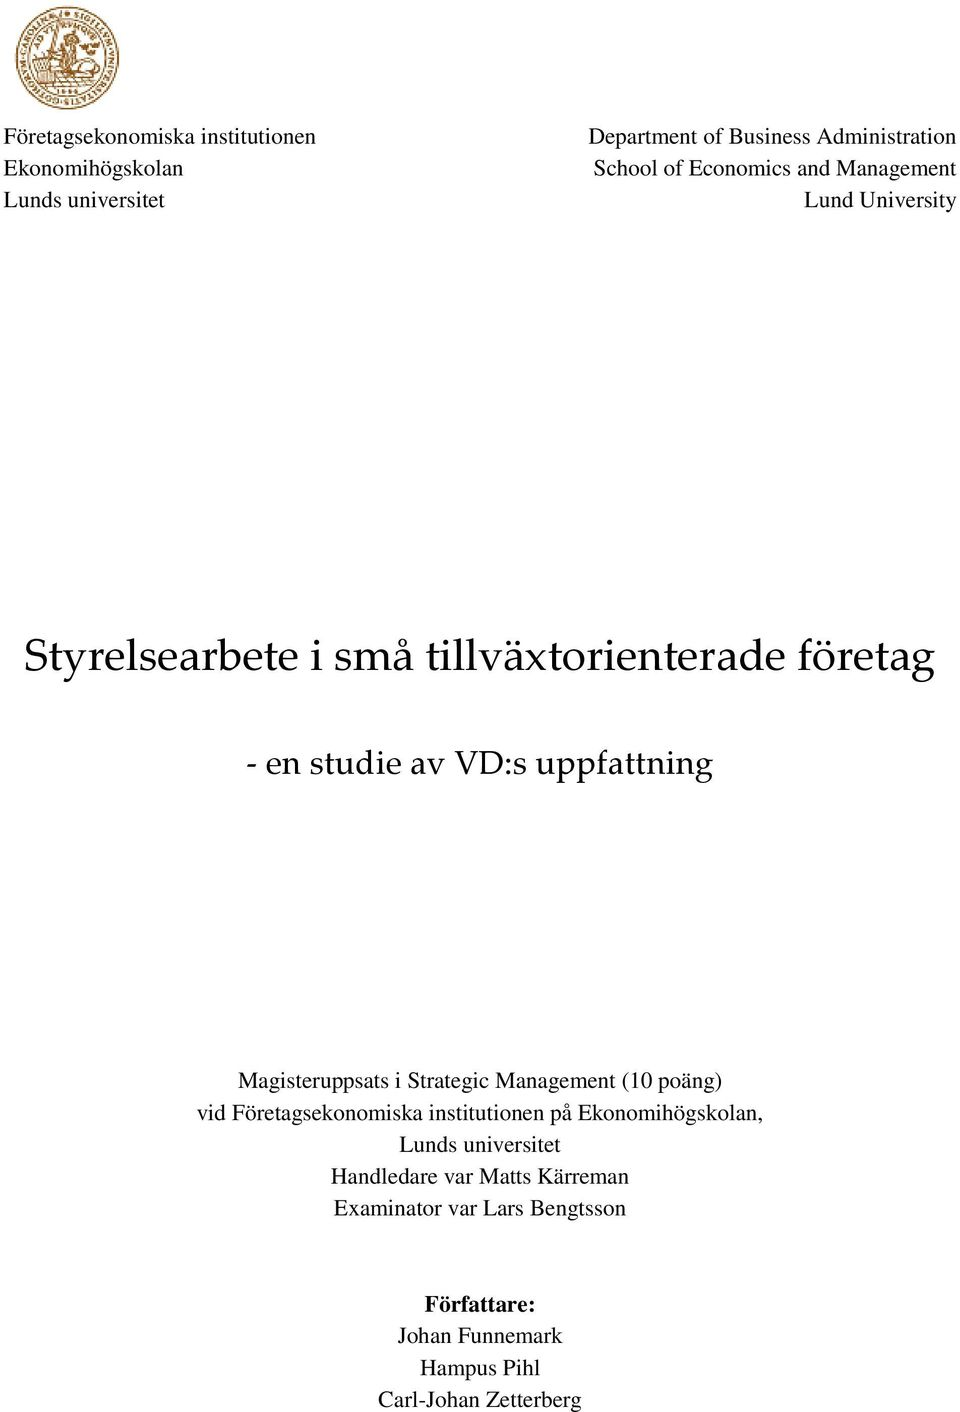 Strategic Management (10 poäng) vid Företagsekonomiska institutionen på Ekonomihögskolan, Lunds universitet